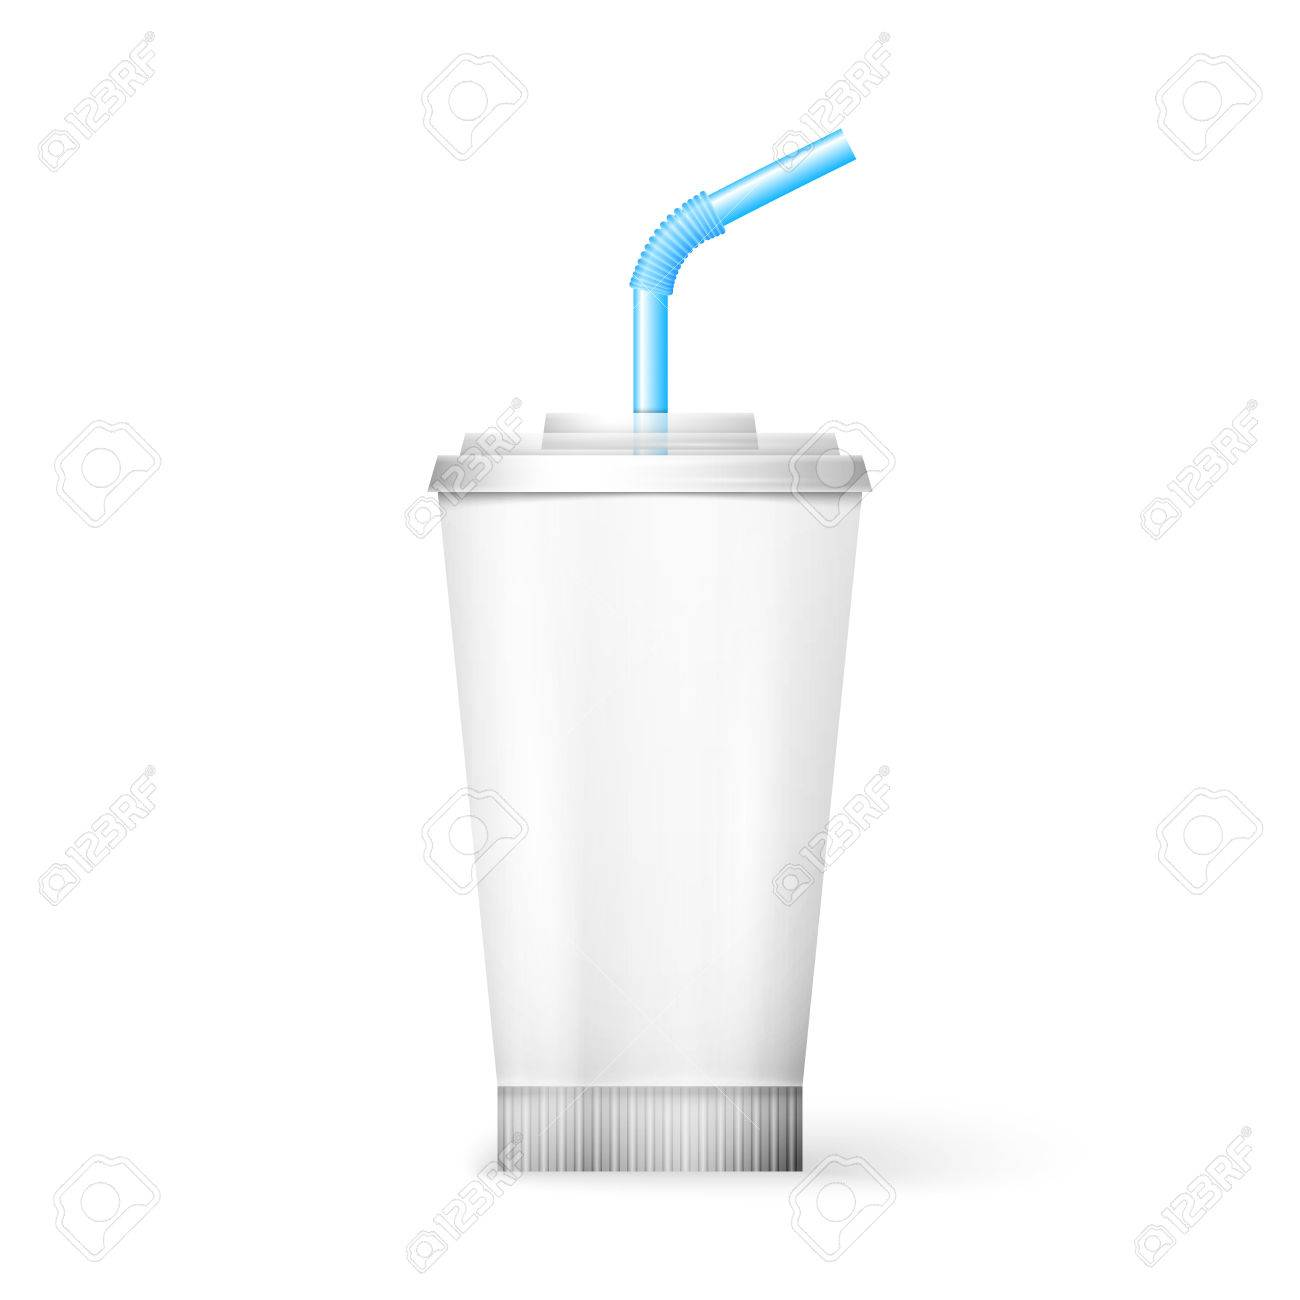 White Paper Cup Template For Soda Or Cold Beverage With Drinking